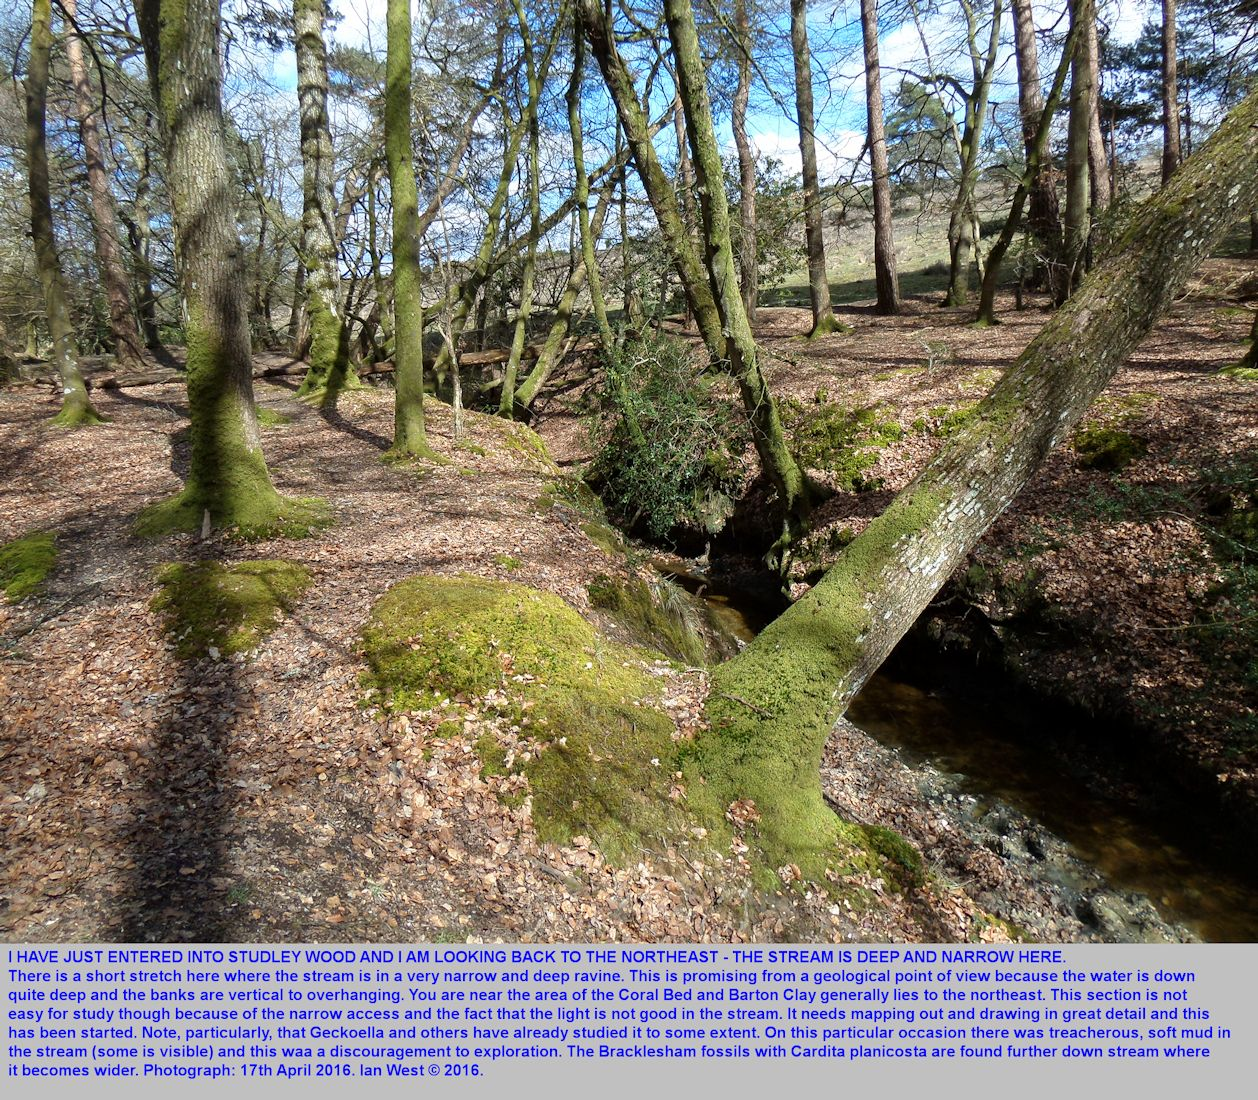 The initial entry area in the northern corner of Studley Wood, New Forest National Park, showing the narrow and deep stream bed, April 2016